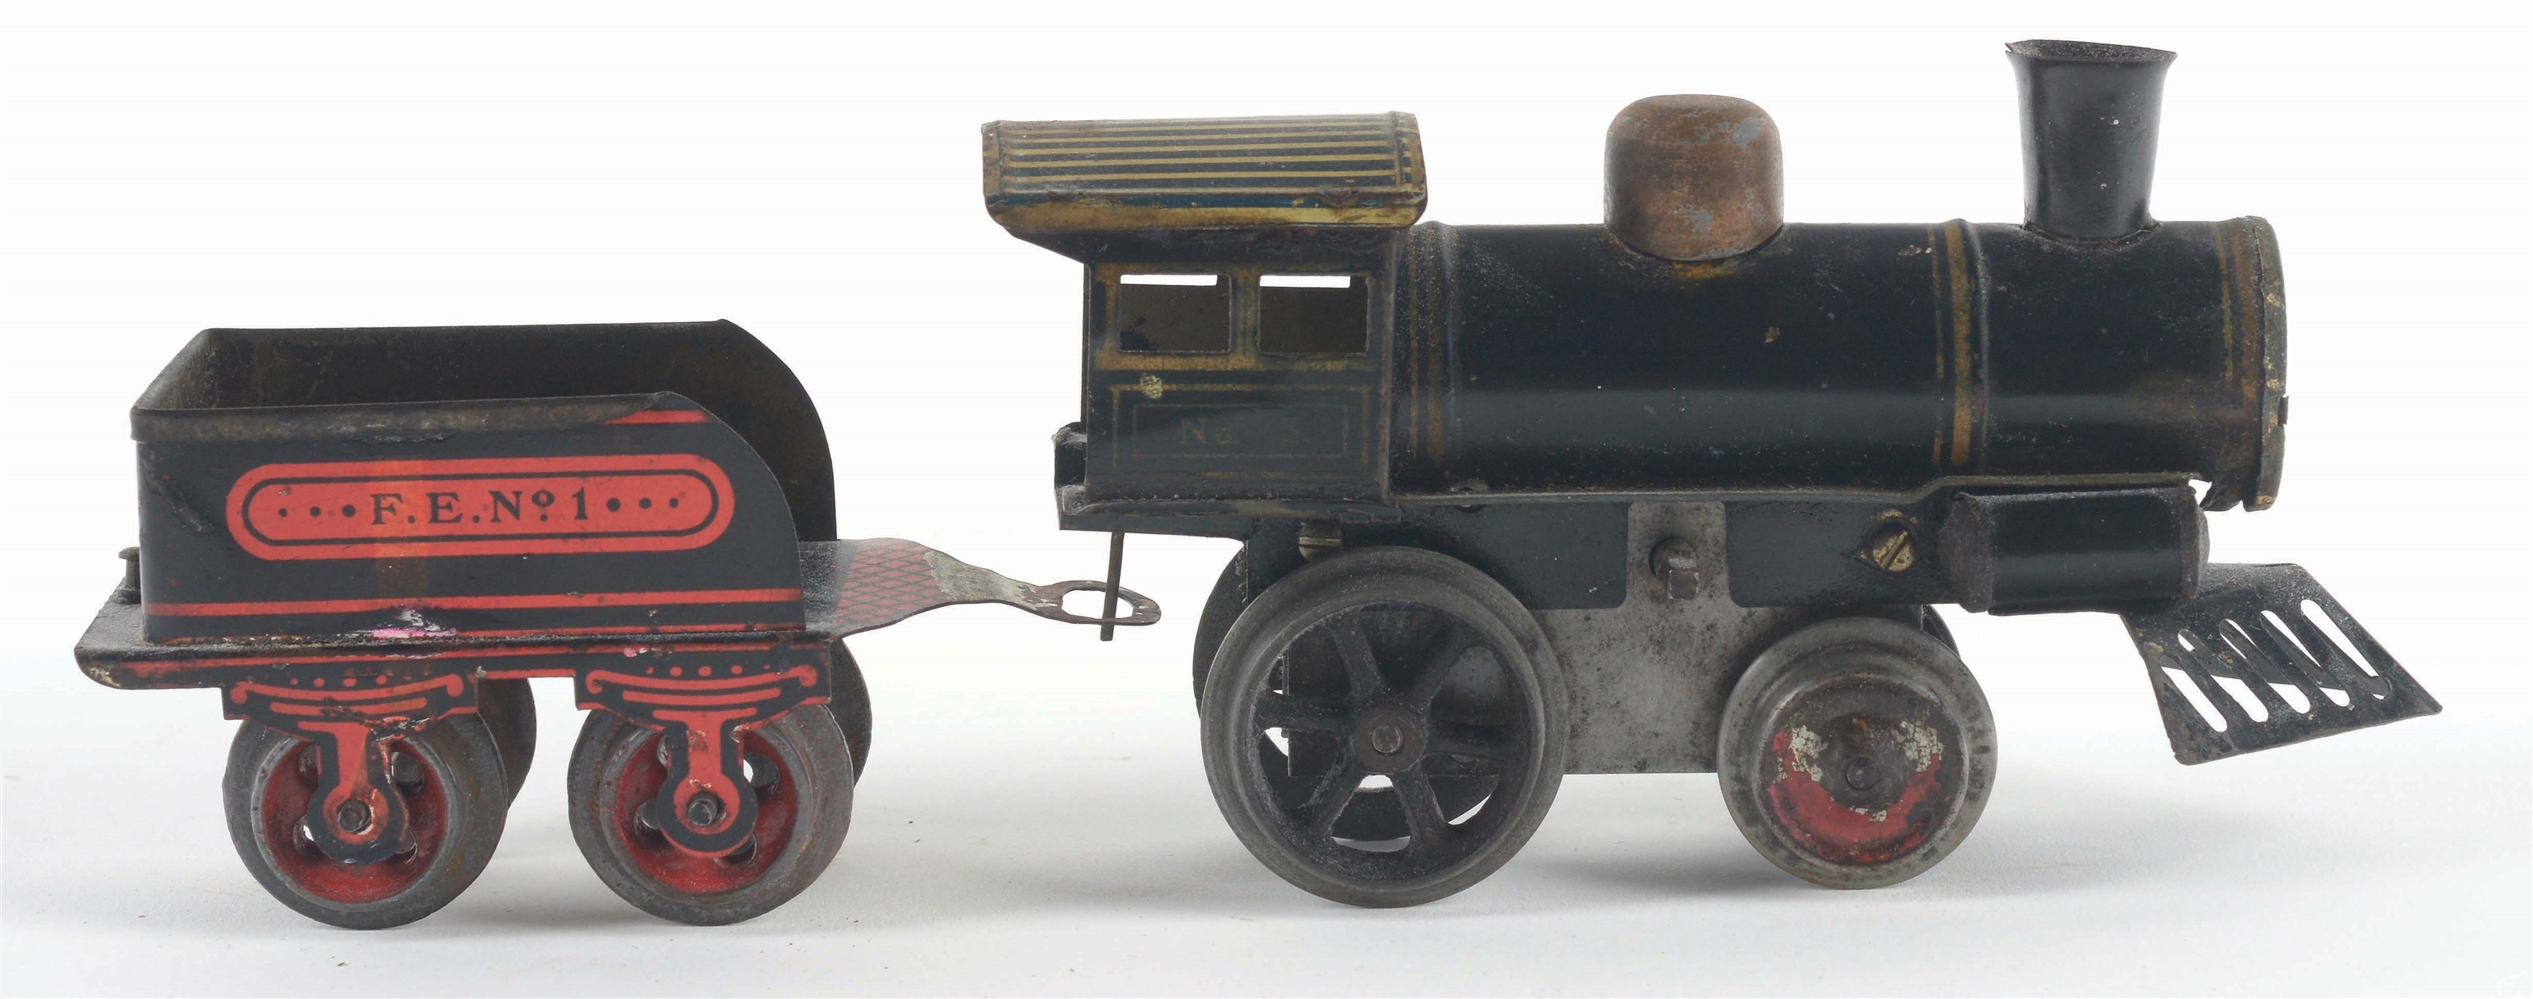 EARLY IVES O-GAUGE NO. 3 STEAM ENGINE AND MATCHING TENDER.